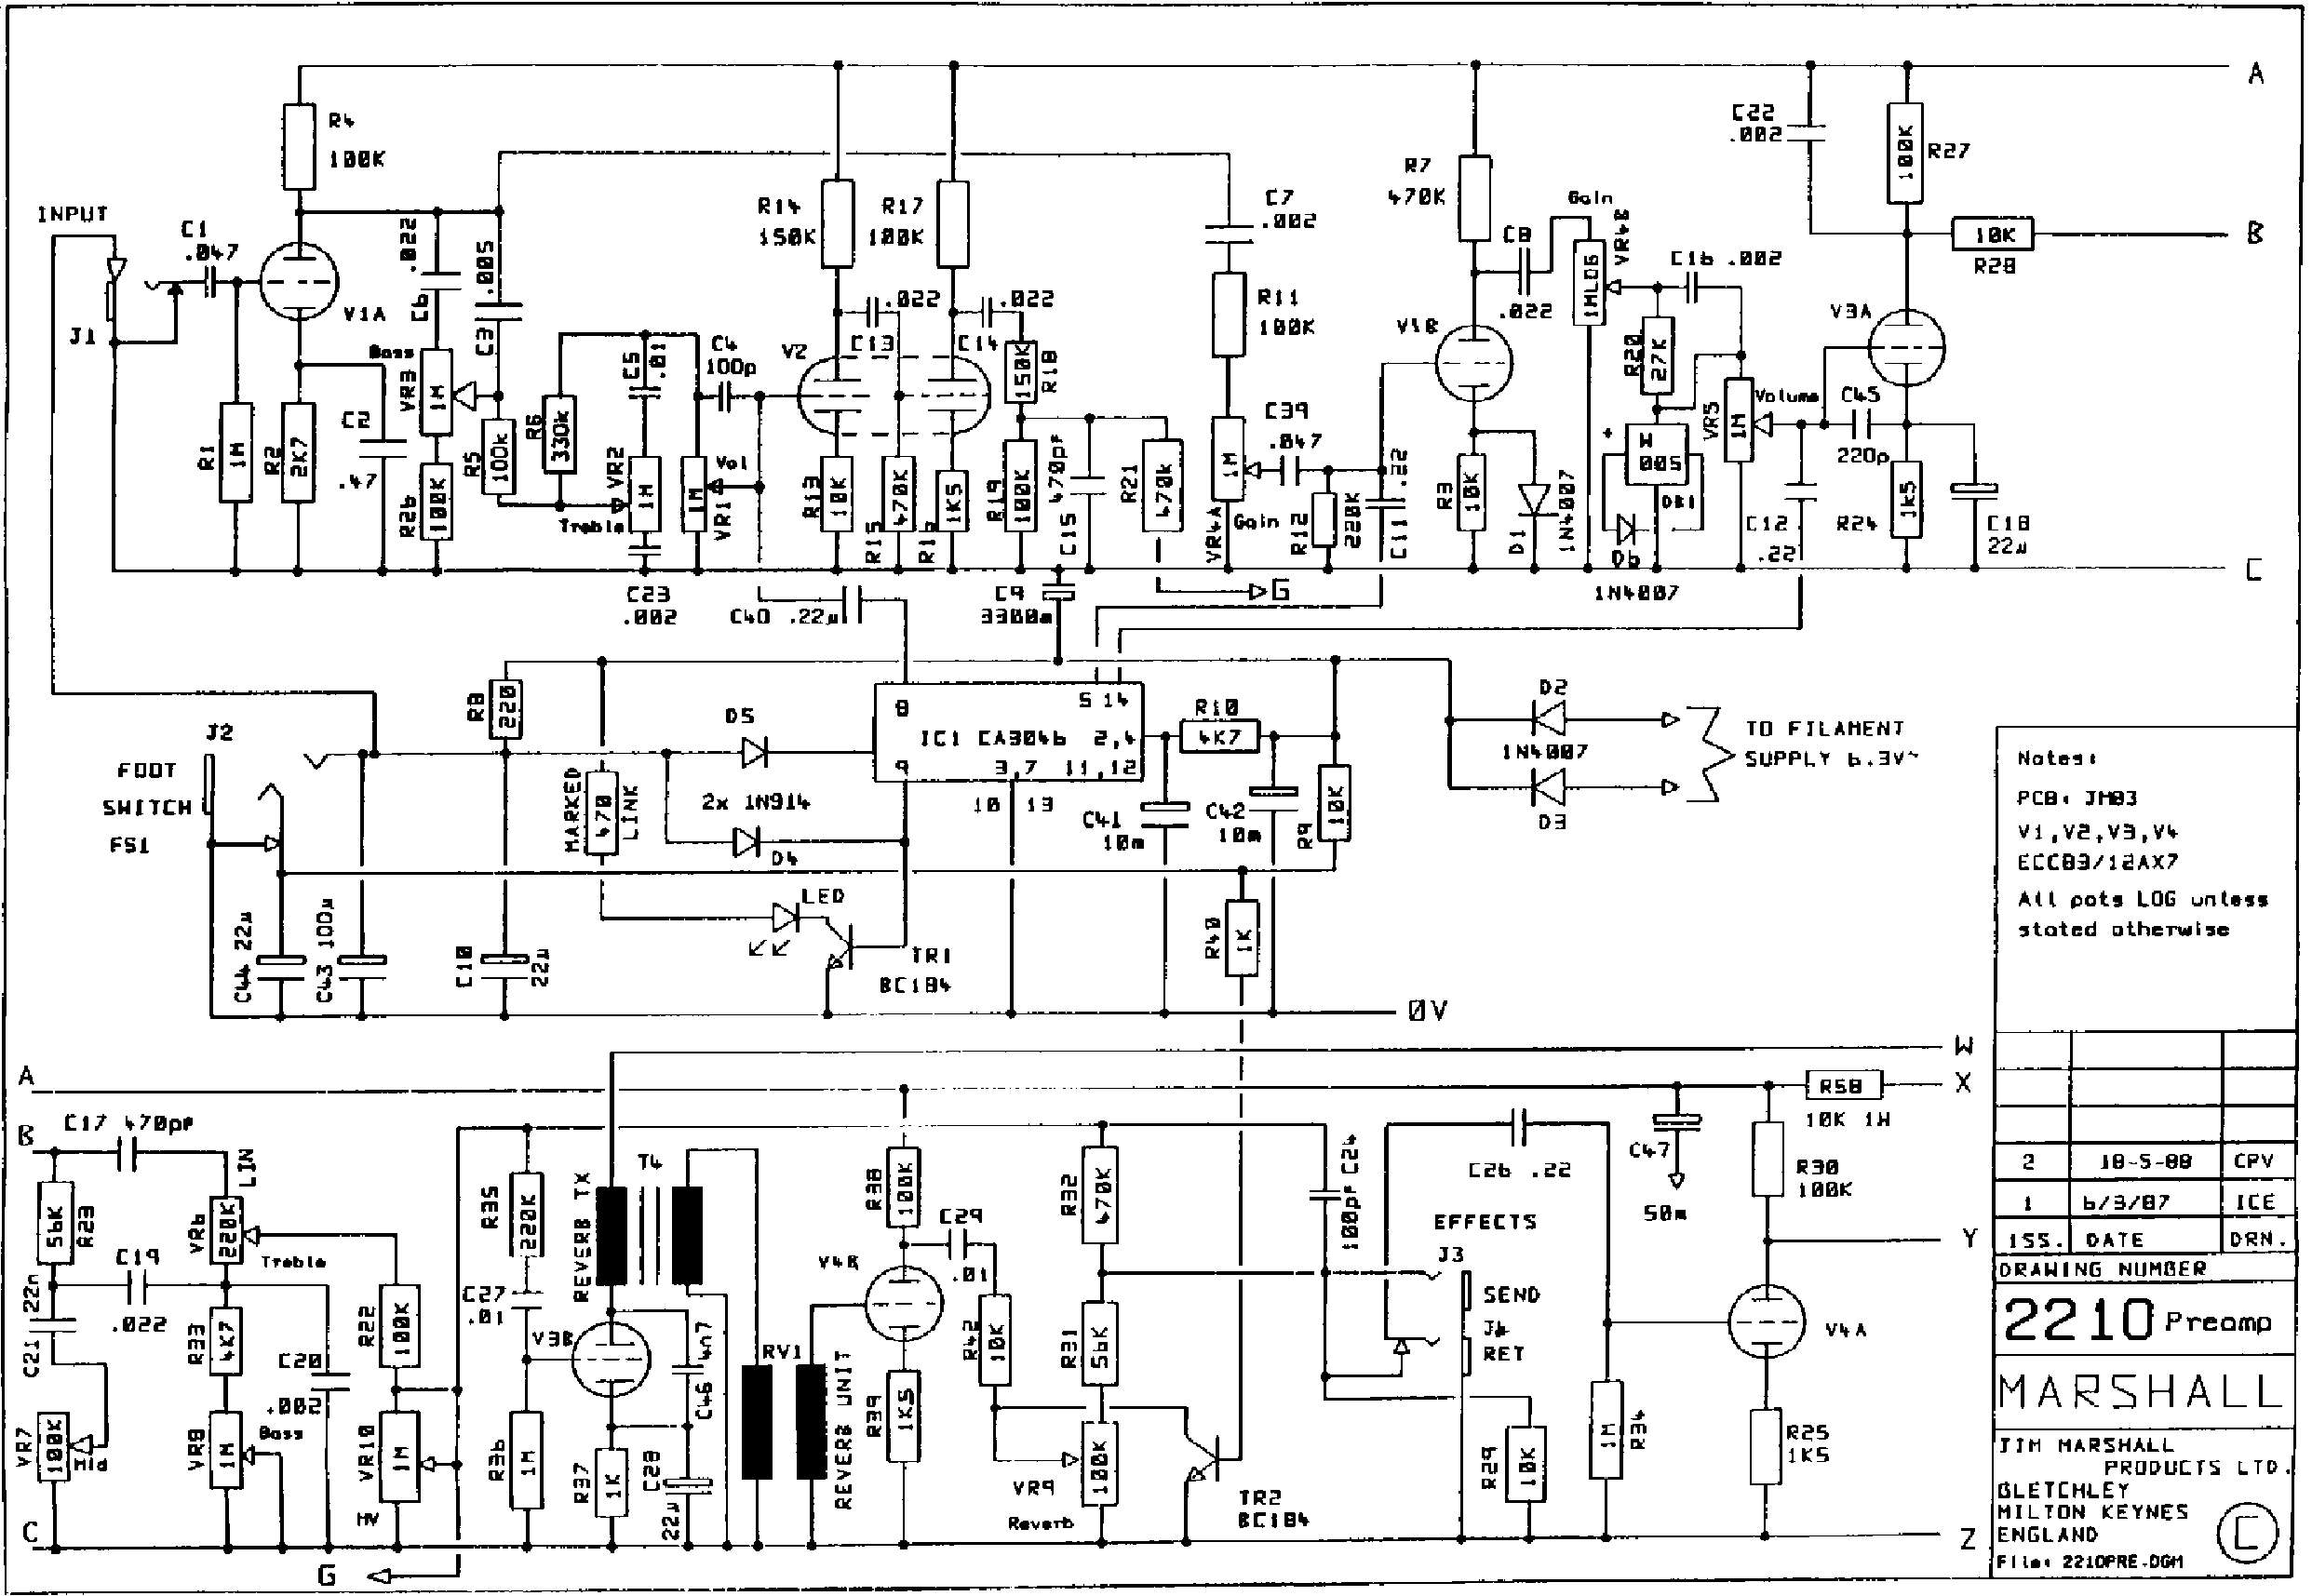 guitarist and amp in separate rooms  - page 6